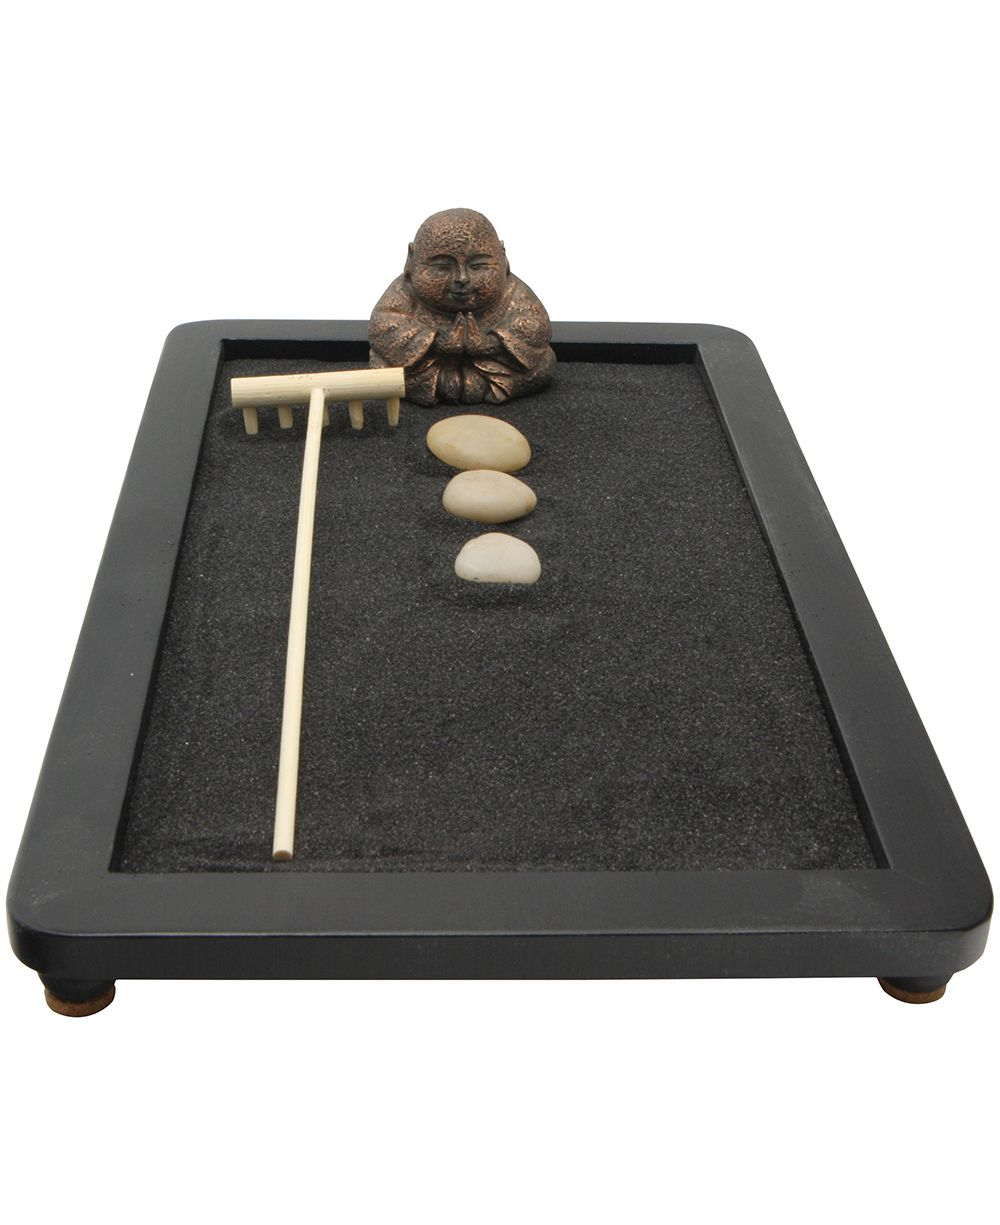 Tabletop Happy Buddha Zen Garden With Black Sand Mini Zen Garden Miniature Zen Garden Zen Garden